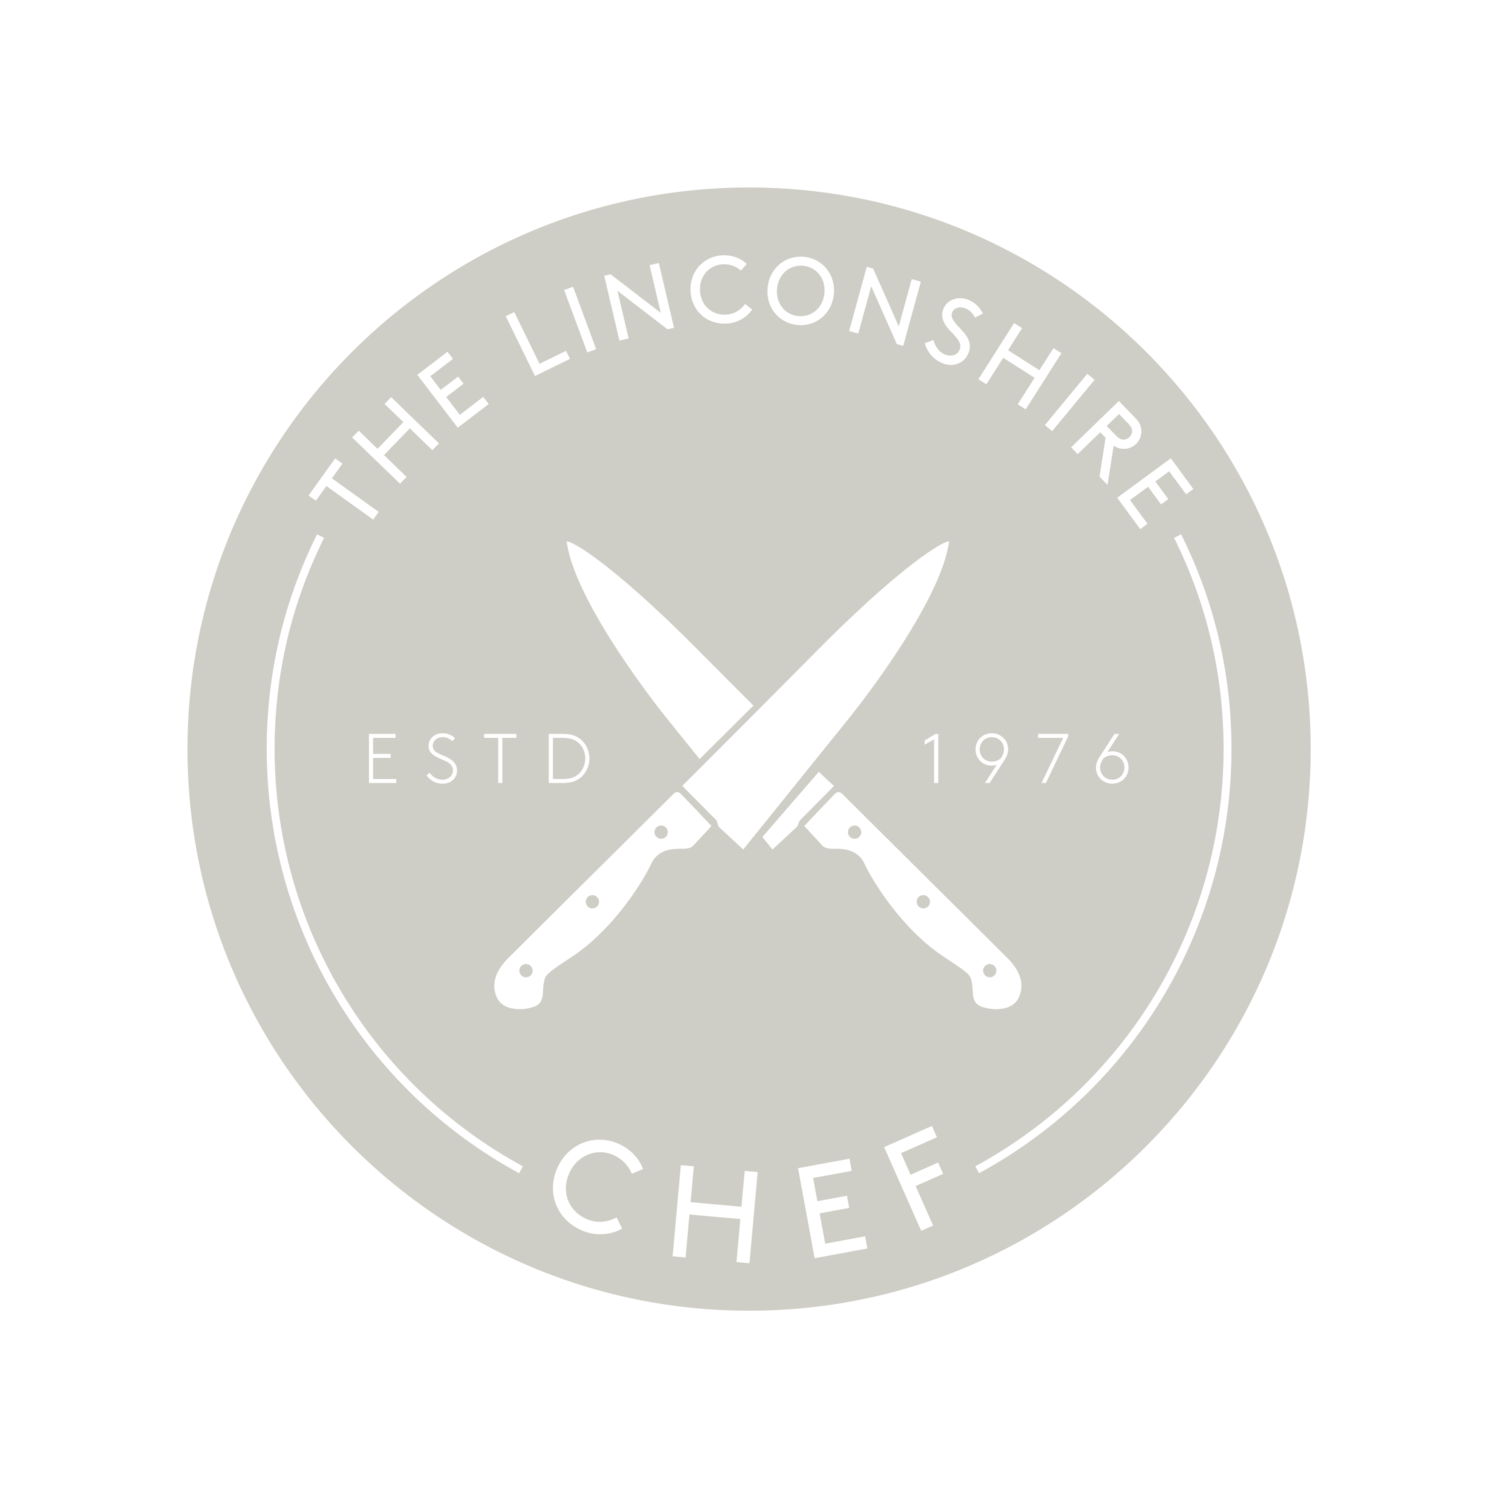 THE LINCOLNSHIRE CHEF